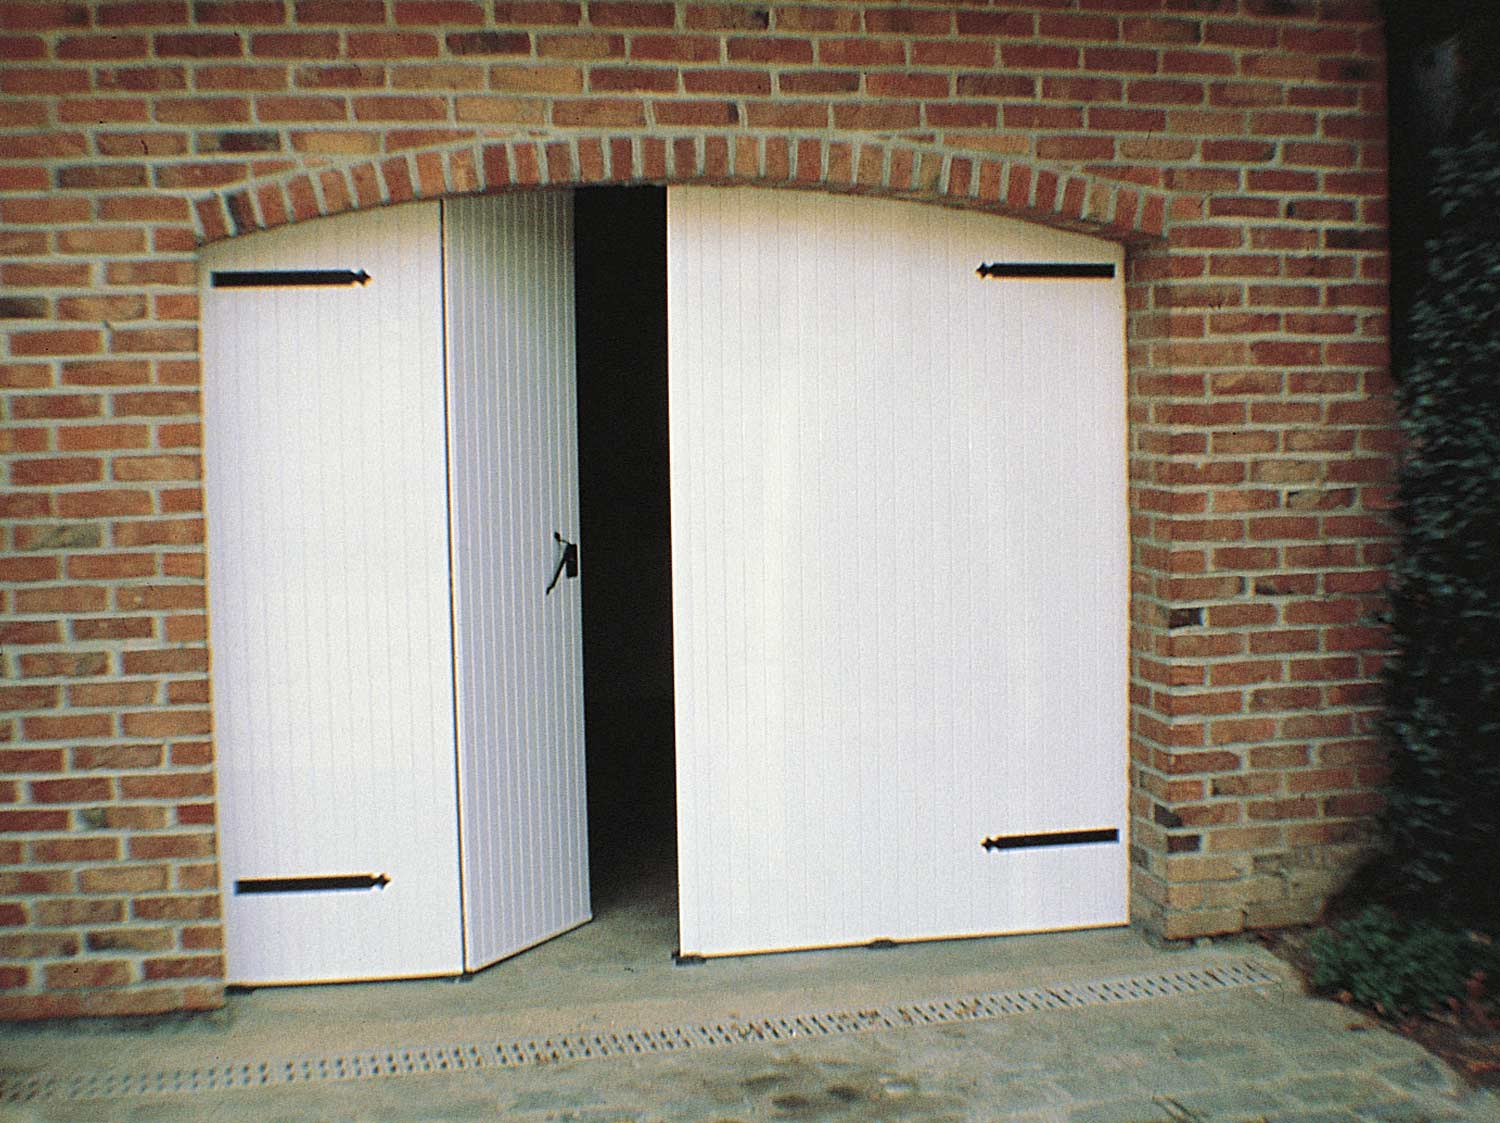 Comment Poser Une Porte De Garage Battante With Comment Installer Une Porte  De Garage